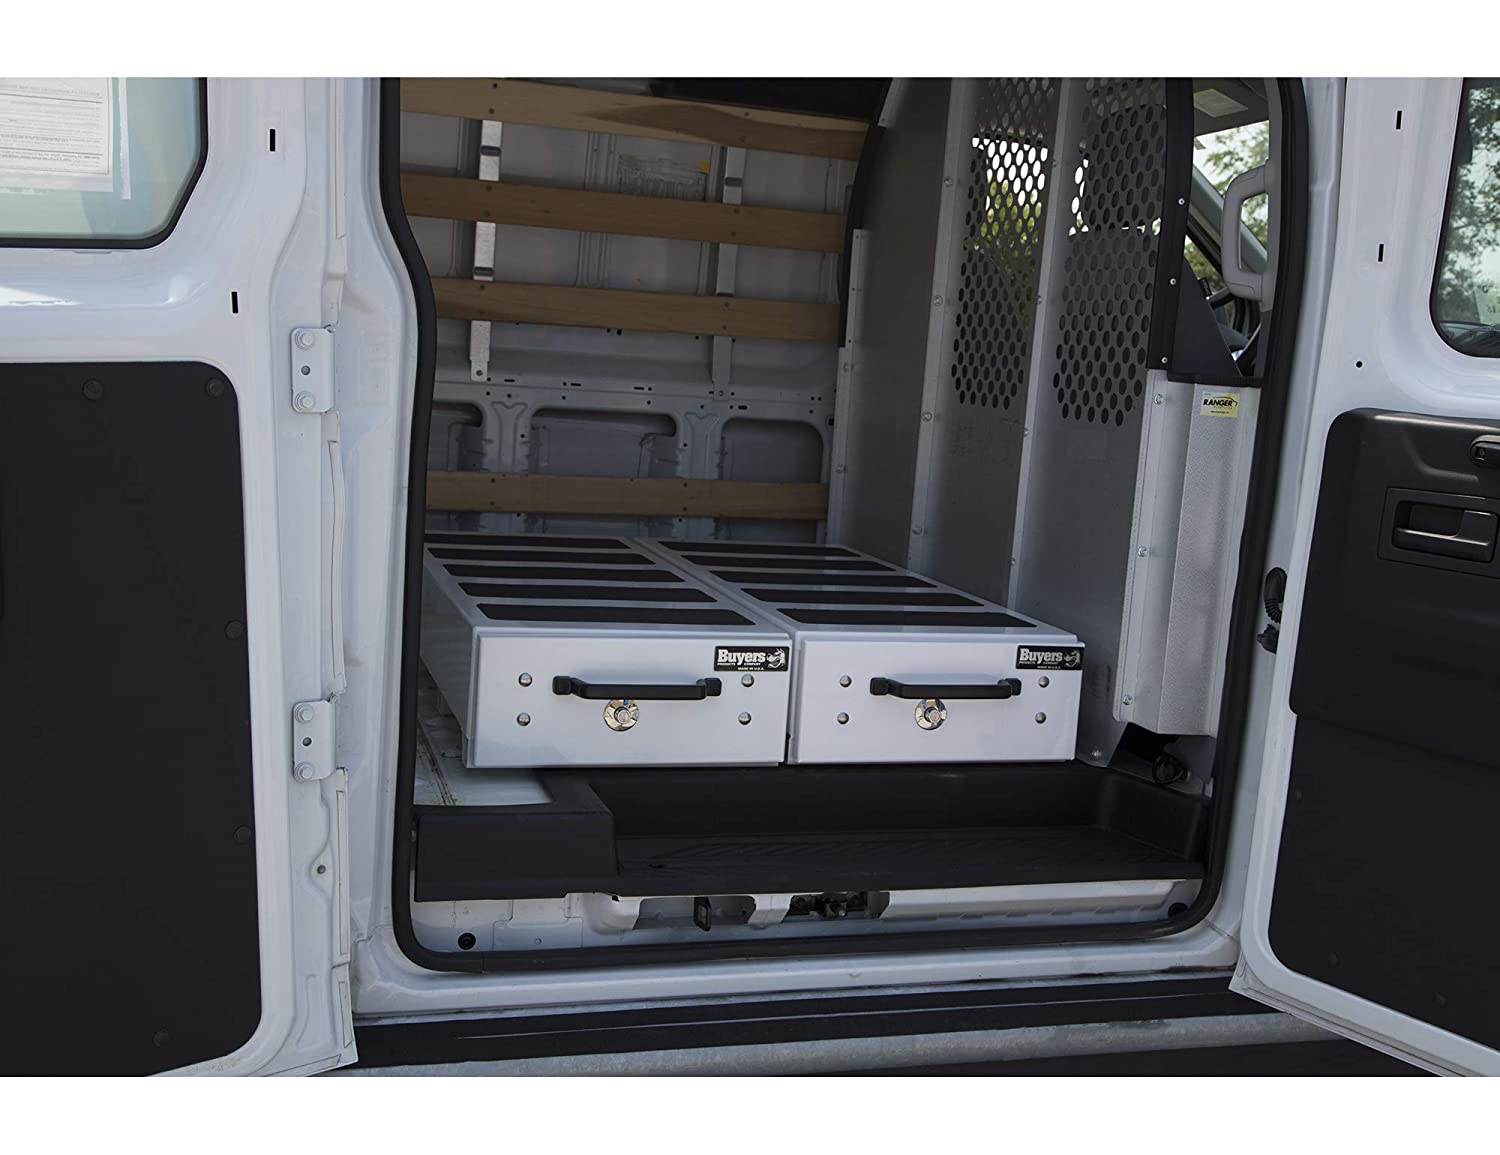 Buyers Products 1718015 Silver 9 X 48 X 40 inches Truck Bed Box with Drawers